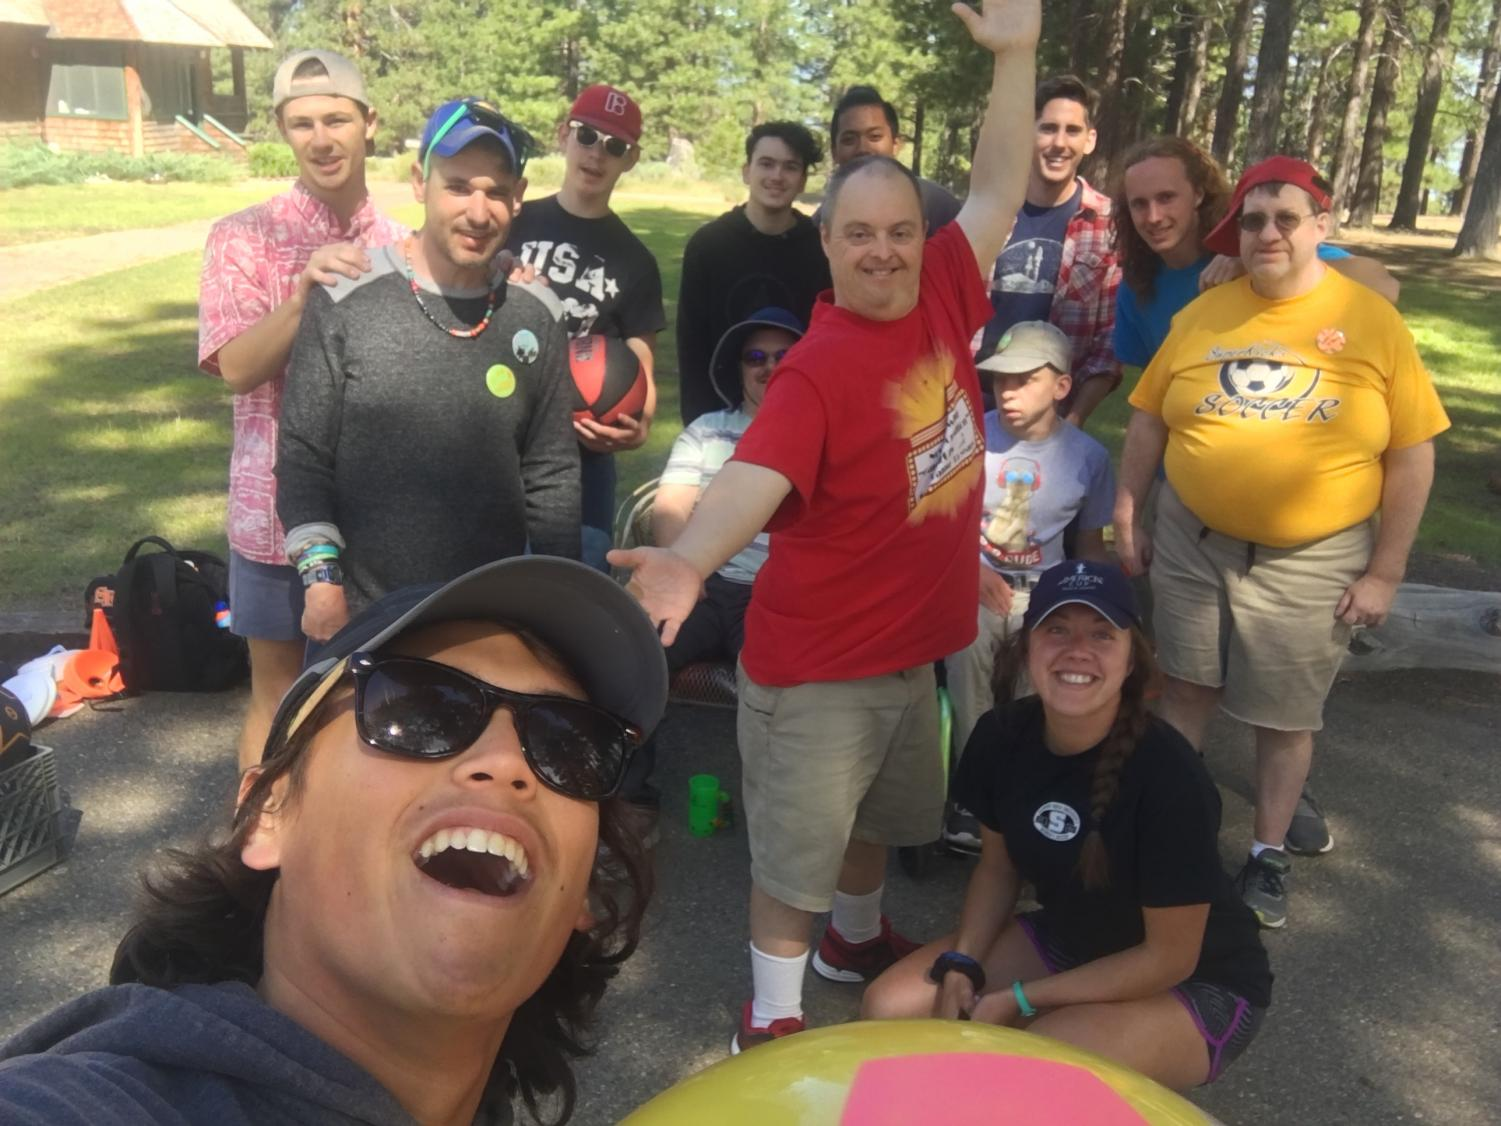 Camden Rothleder taking a selfie with his Camp ReCreation cabin group after playing kickball and basketball.